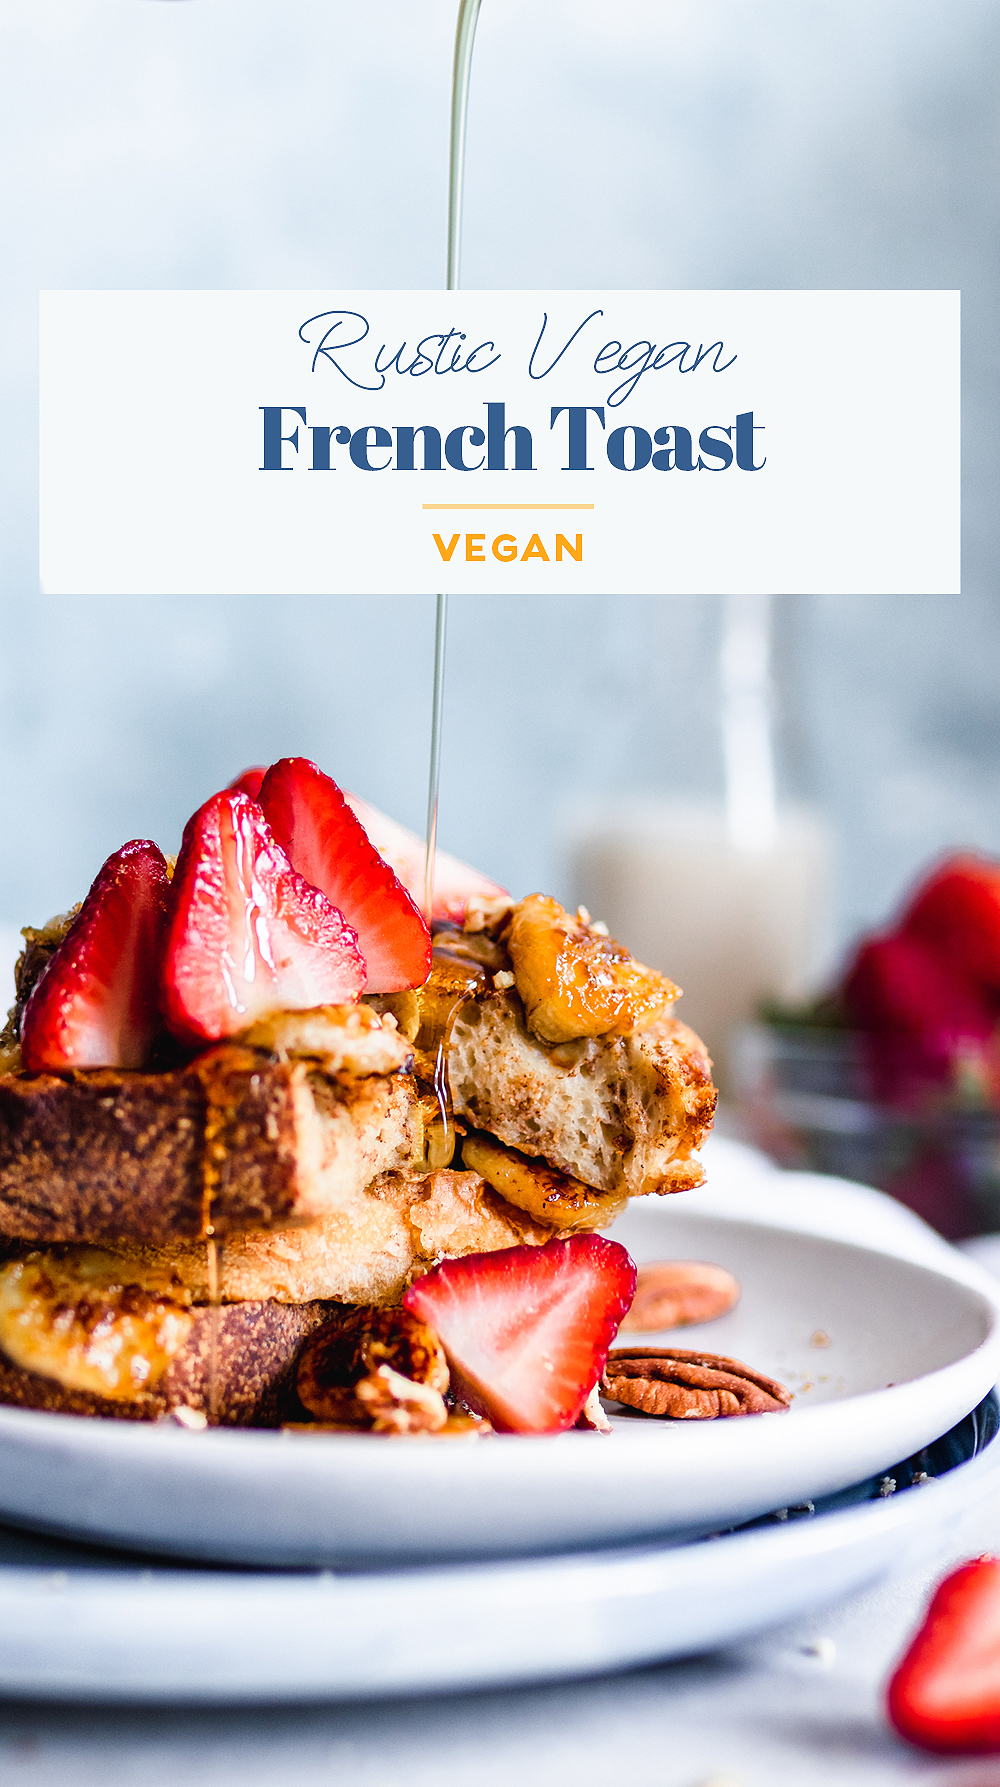 Rustic Vegan French Toast